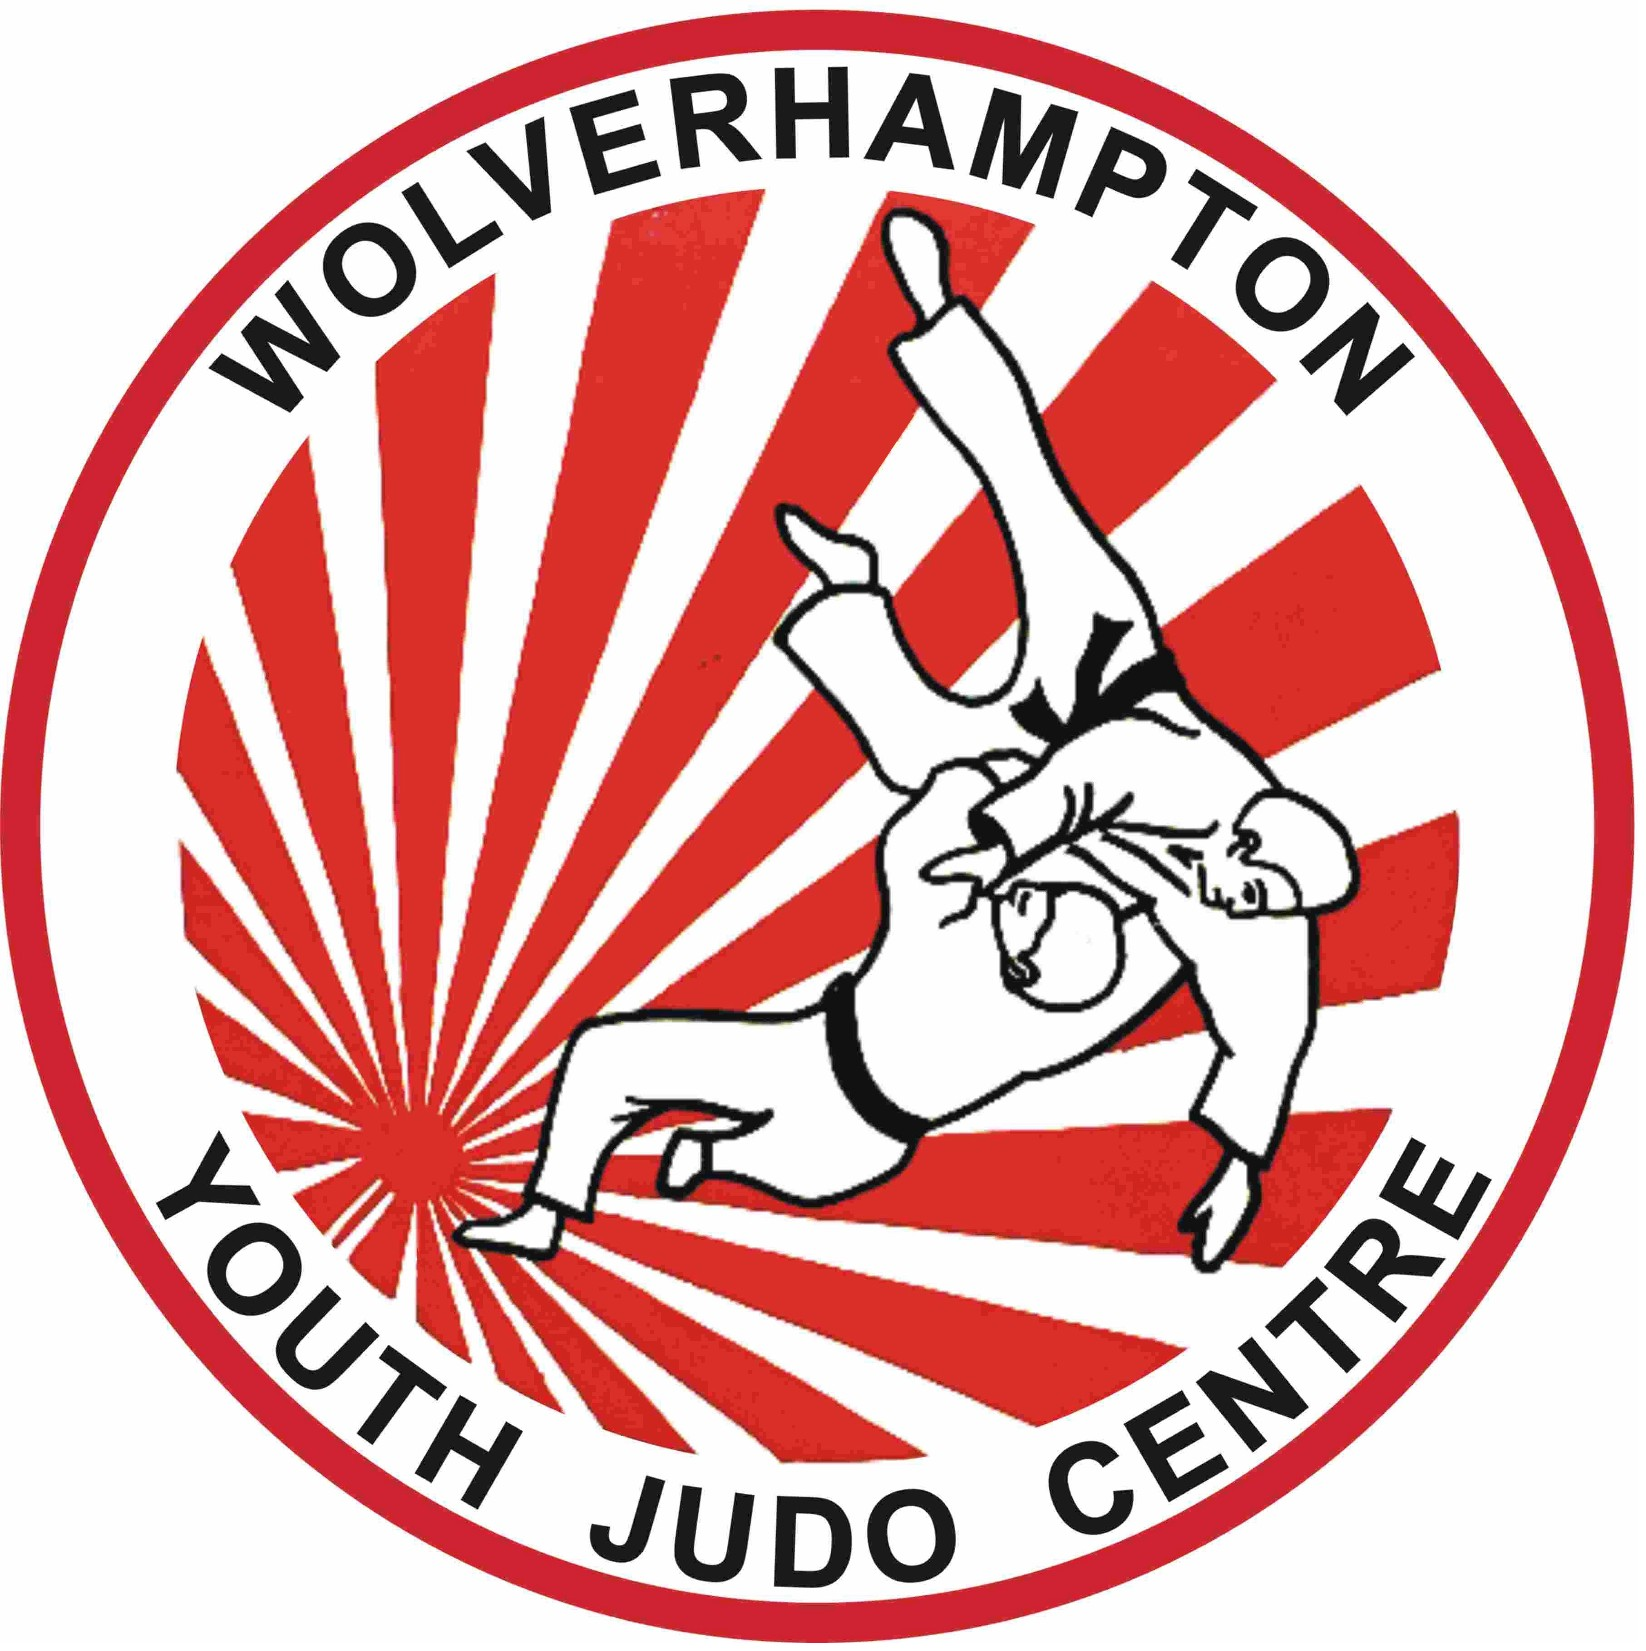 CLICK ON THIS LINK TO GO TO THE WEB SITE OF WOLVERHAMPTON YOUTH JUDO CENTRE